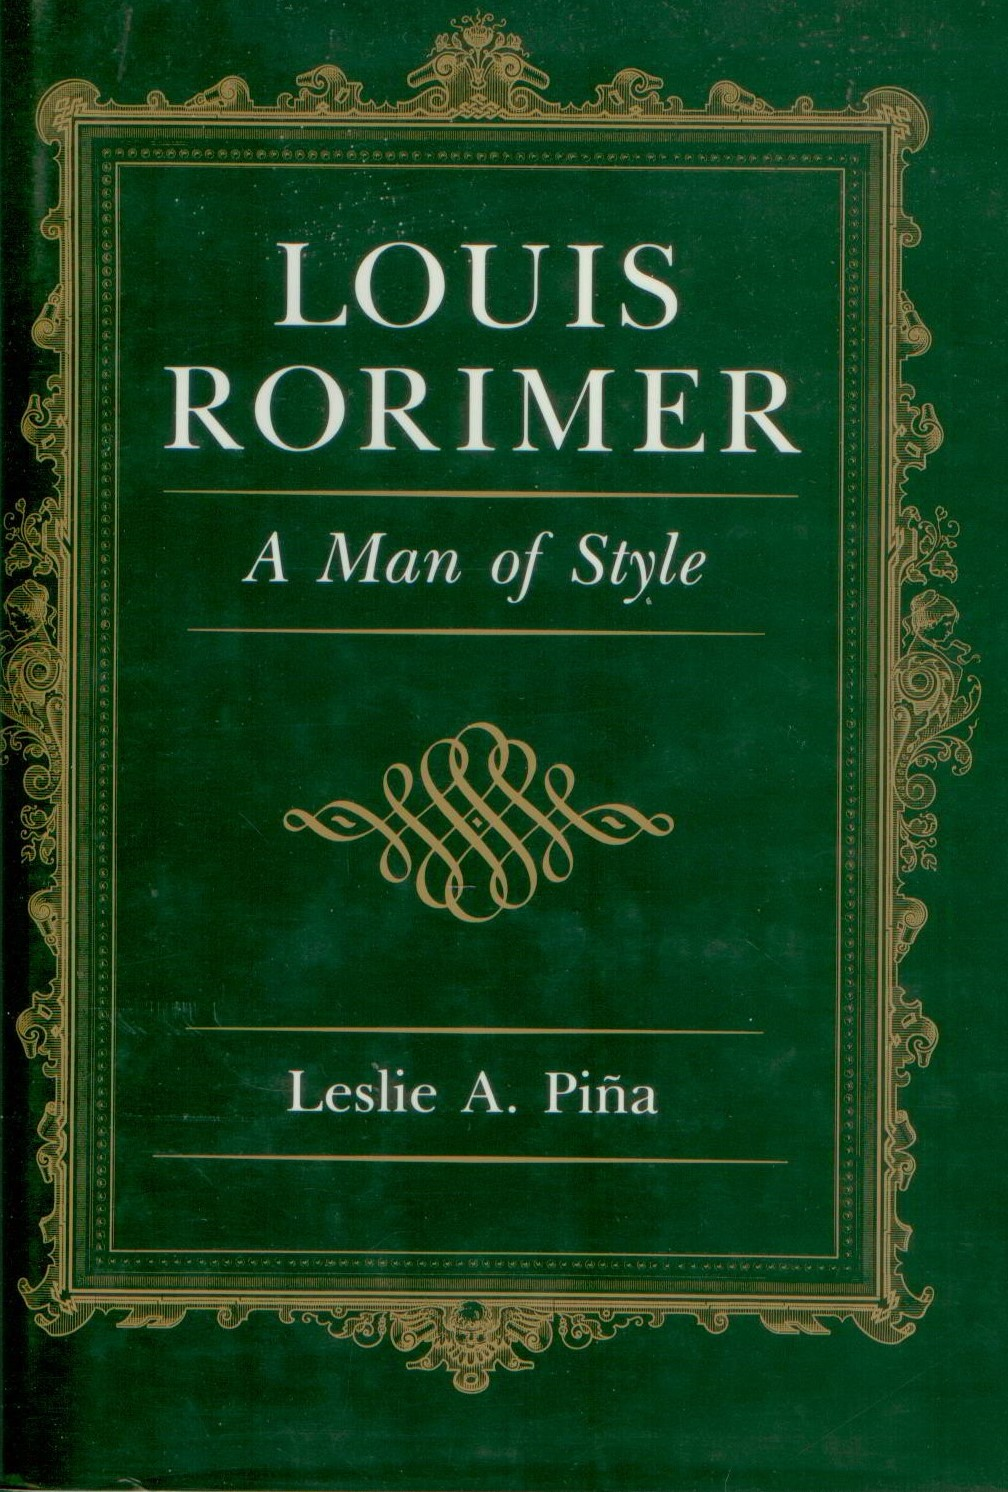 Louis Rorimer: A Man of Style